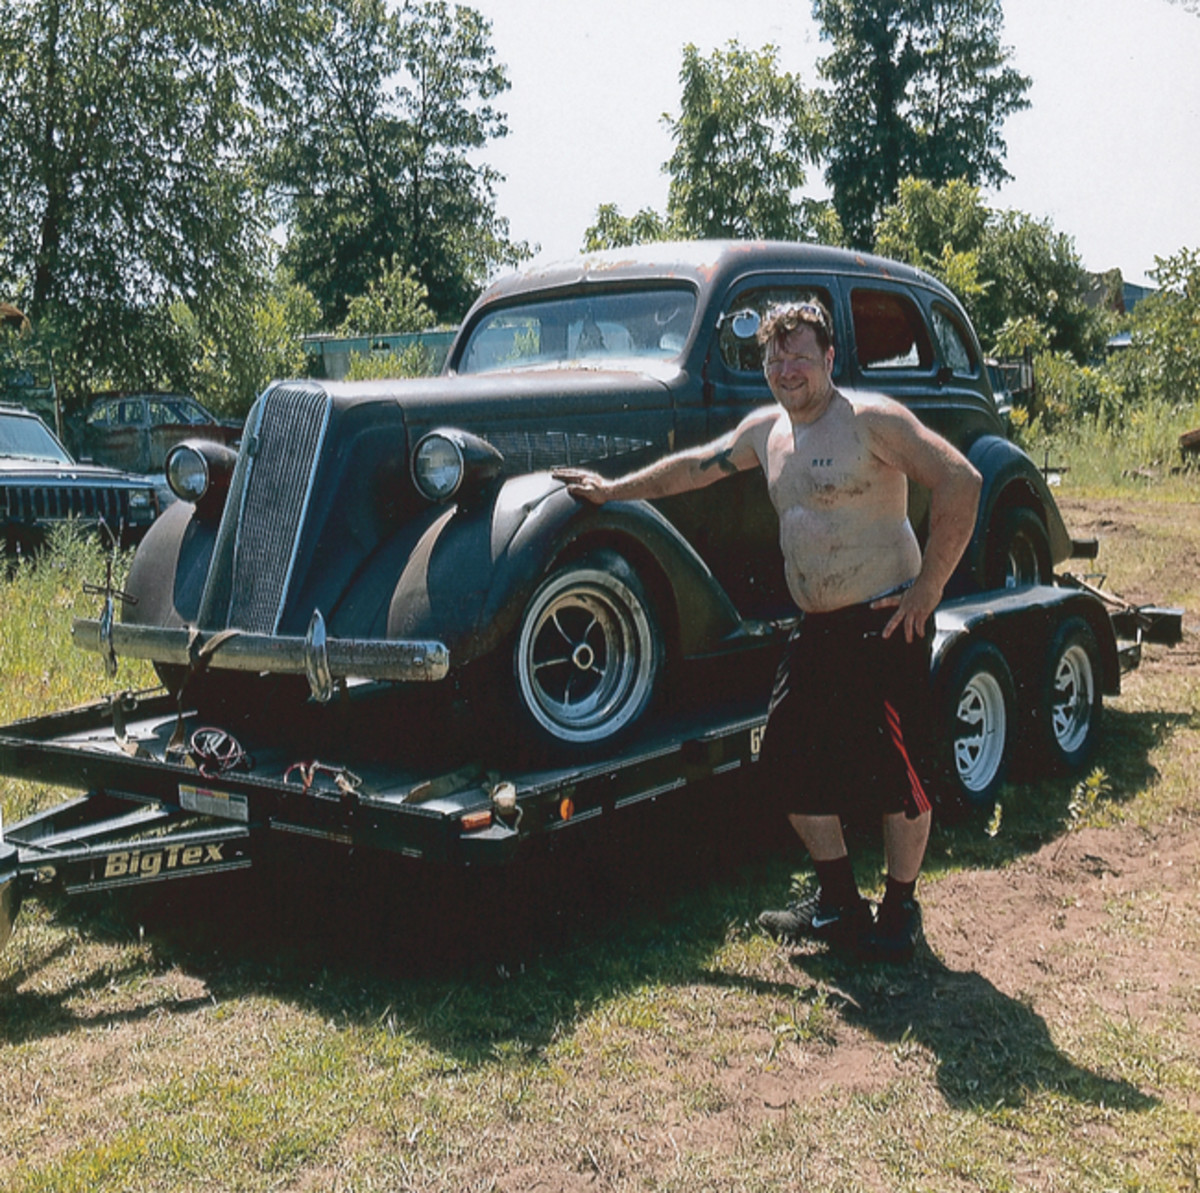 Raymon Alt of Ironton, Wis., poses with the 1936 Nash 400 Deluxe sedan he purchased on Golden Sands Salvage's final day of business under current ownership. The car was previously updated with a modern Chevy drivetrain. Alt intends to restore the car to a period hot rod.